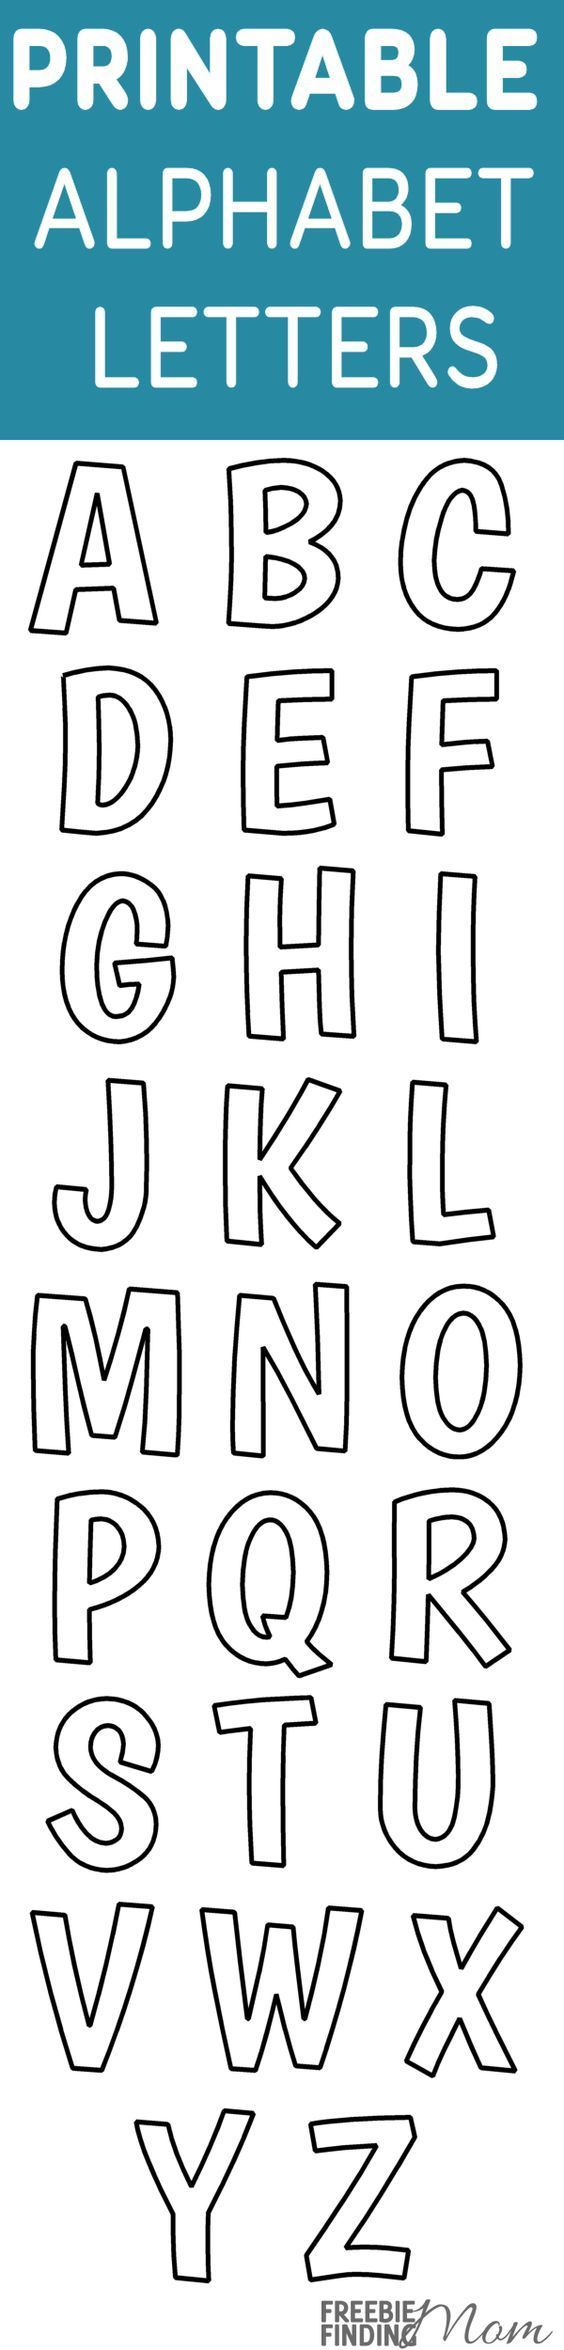 Printable free alphabet templates are useful for a myriad of projects for school, crafts, scrapbooking, teaching kids their letters, a homeschool room and more. Keep these free printables handy. Go ahead and print yours now.: